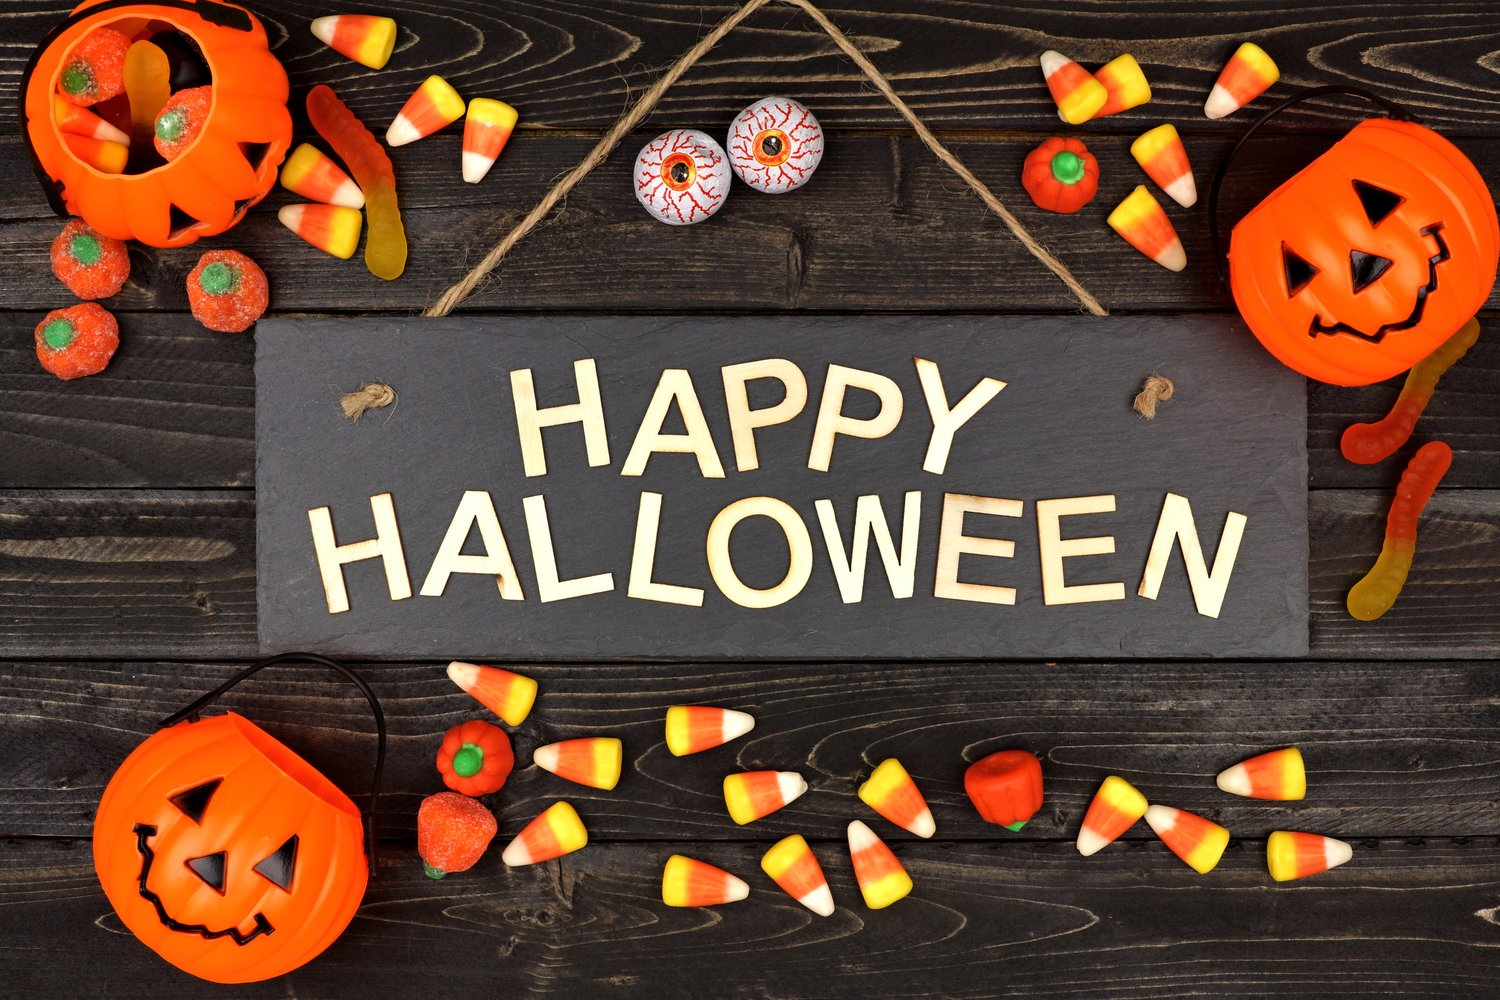 happy-halloween-sign-and-frame-of-candy-on-black-wood-841992038-6000x4000.jpeg